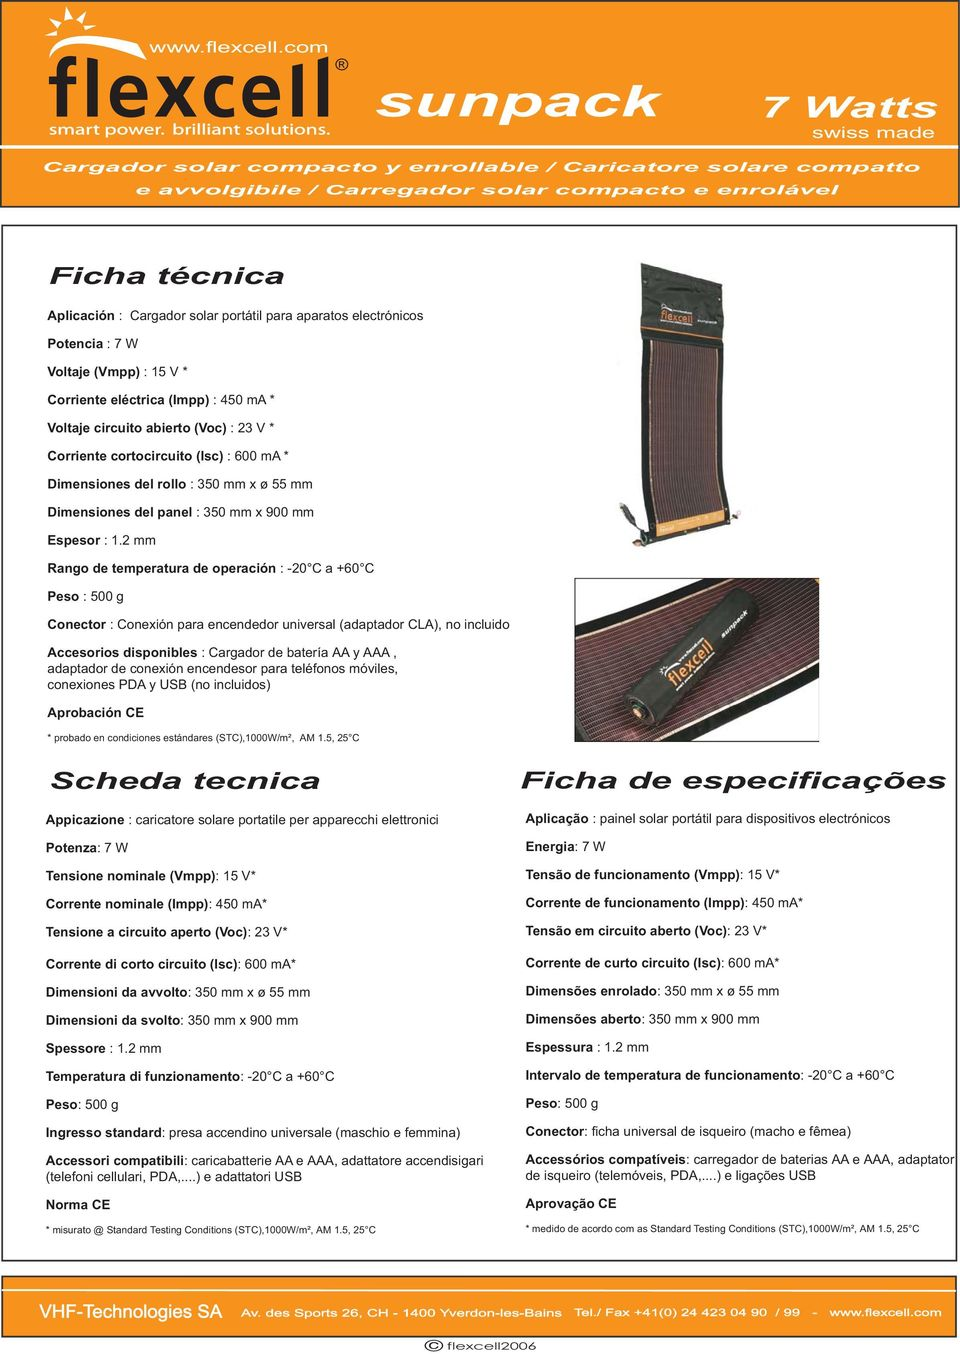 mm x ø 55 mm Dimensiones del panel : 350 mm x 900 mm Espesor : 1.